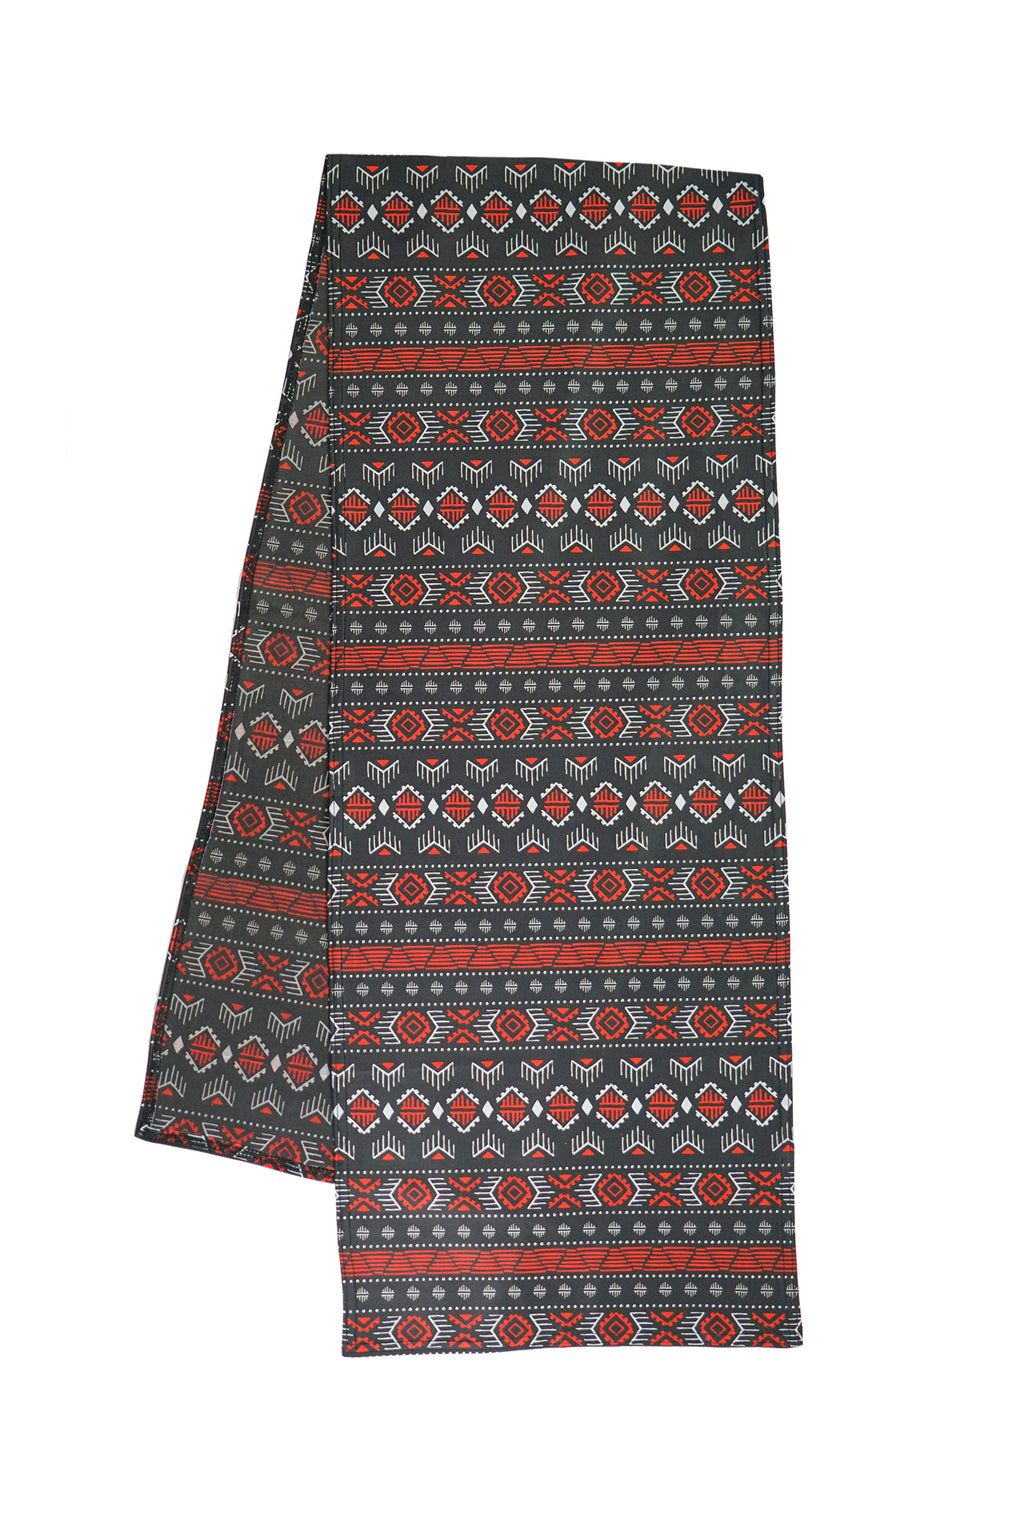 Super comfortable music festival pashmina. Unique tribal patterns with vibrant red, white, and black colors. The perfect music festival accessory that can be used as a face mask.